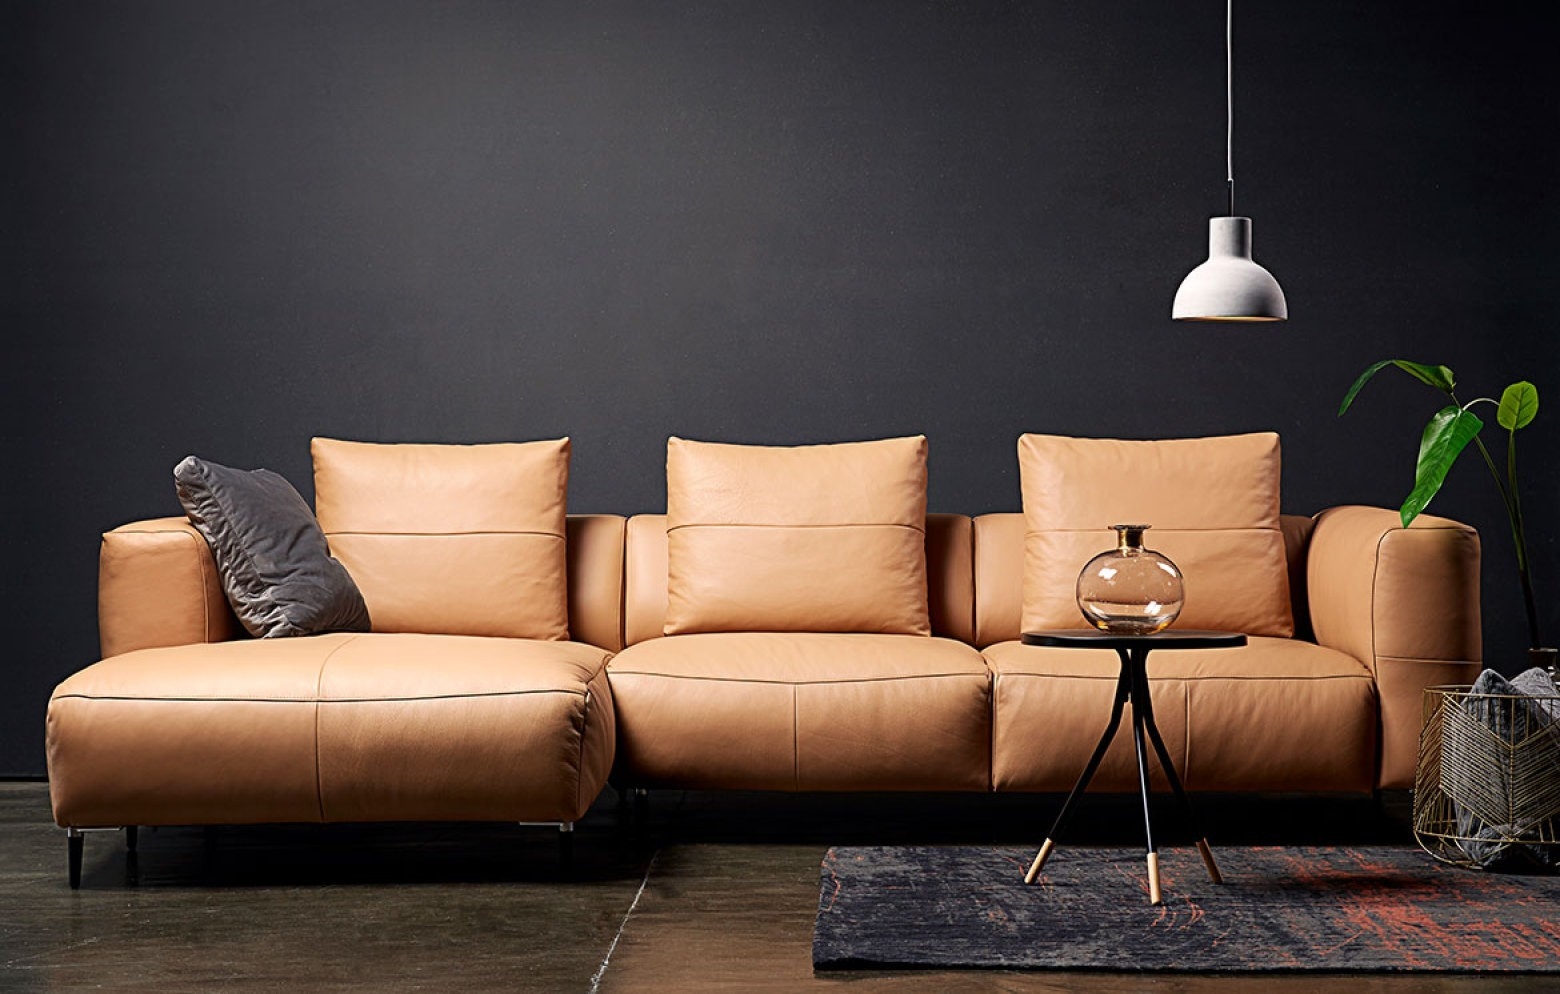 Reno sofas online outlet who 39 s perfect for Outlet online arredamento design